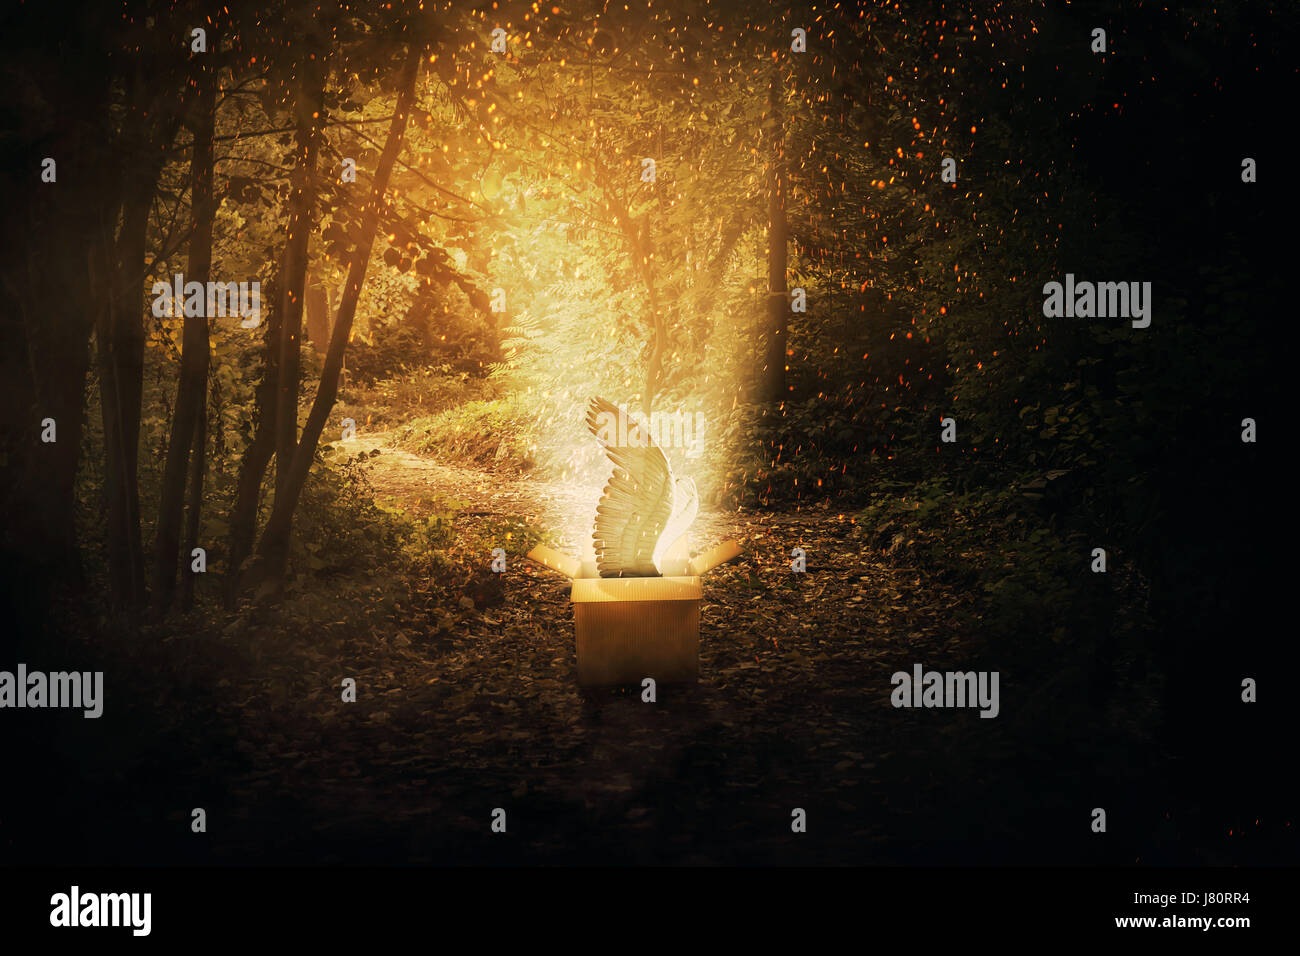 Magical cardboard box opened in a dark forest and a mystic creature with angel wings escape through a lot of fireflies - Stock Image